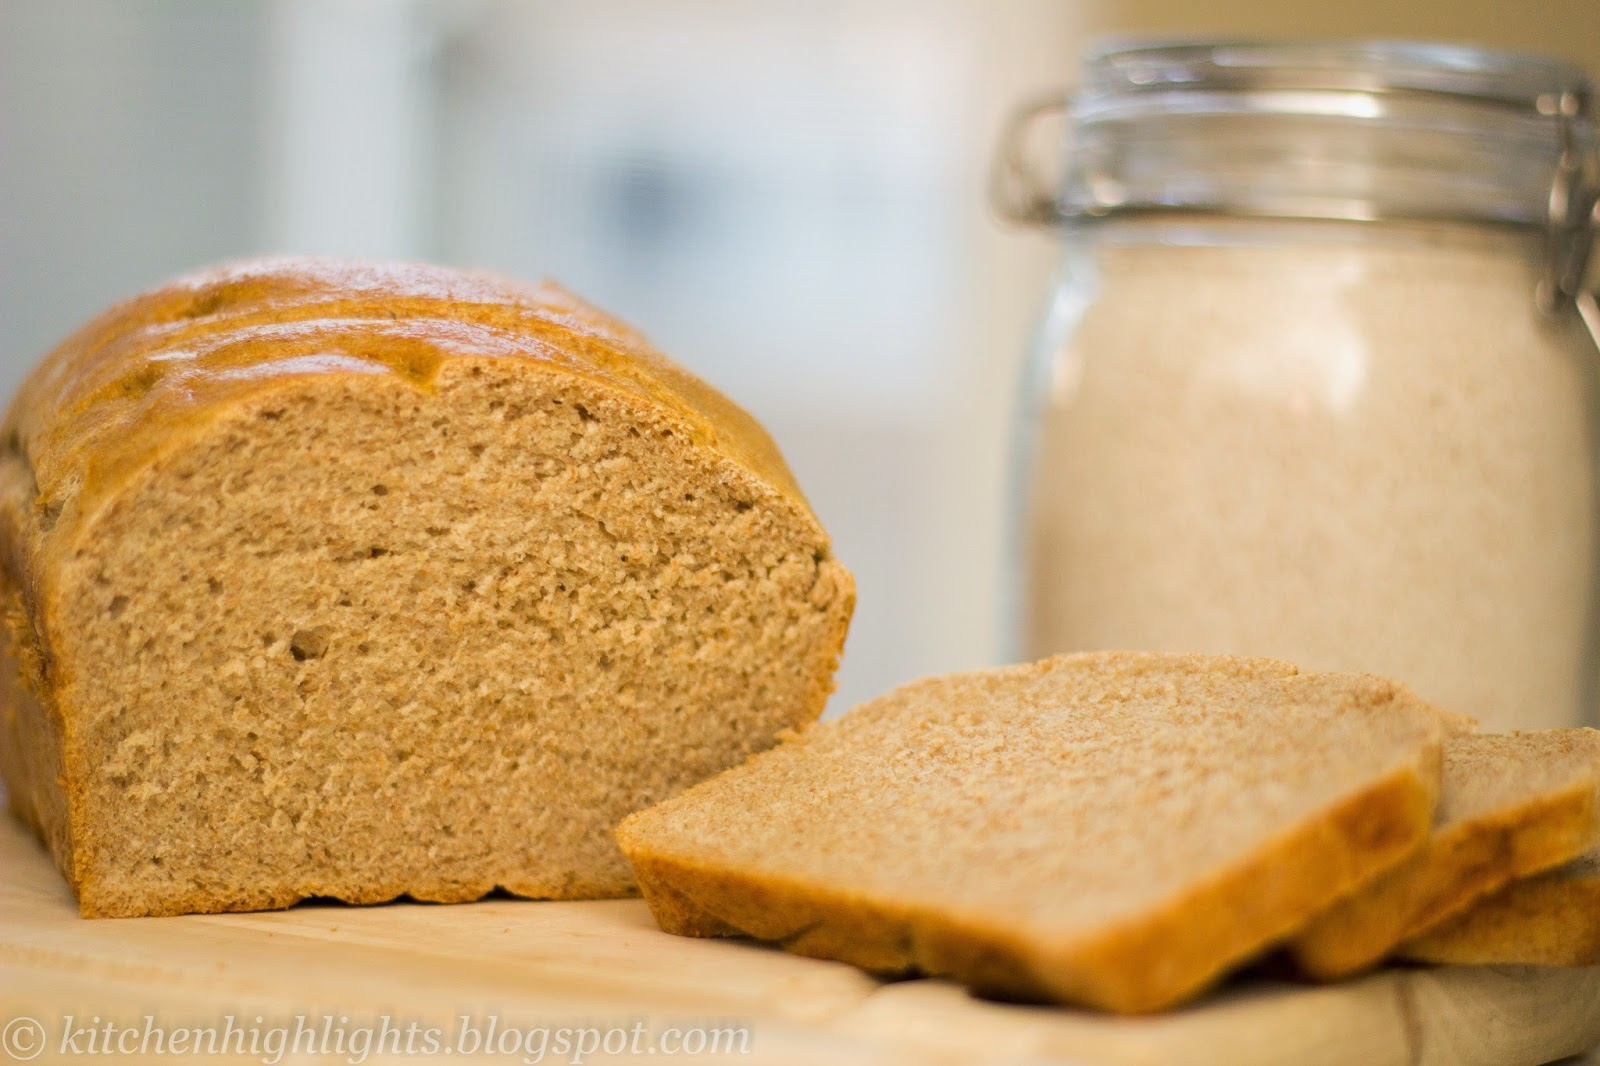 Whole wheat bread has a wonderful flavor, texture and aroma